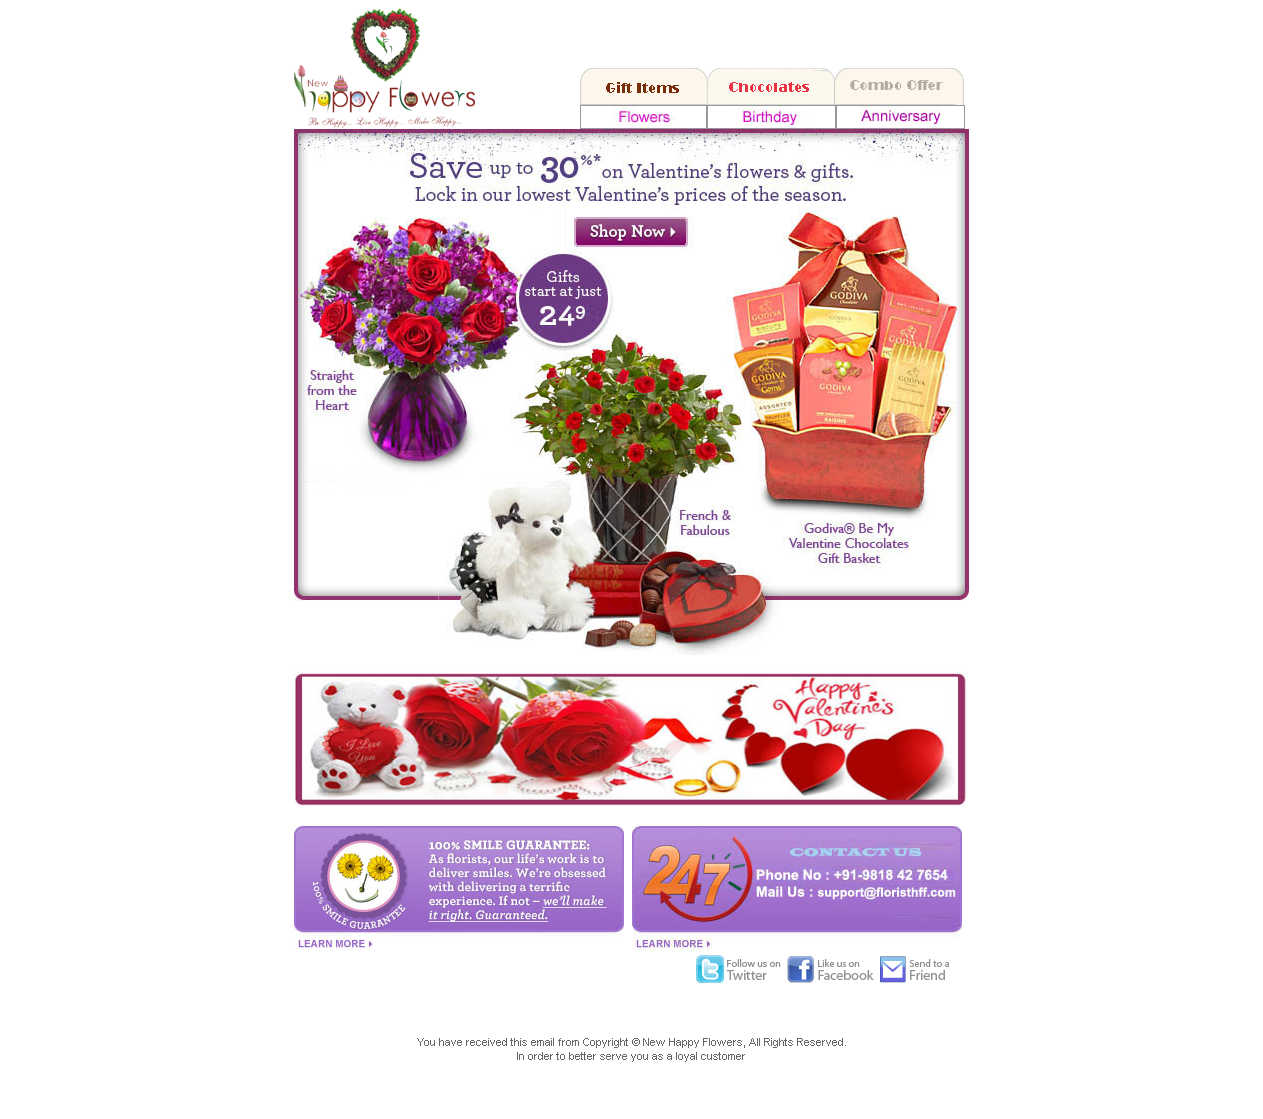 New happy flowers floristhff florist in delhi india new happy flowers the premium flower distributors in delhi dubai offers a wide range of flowers gifts and indoor plants we are the leaders in dubai izmirmasajfo